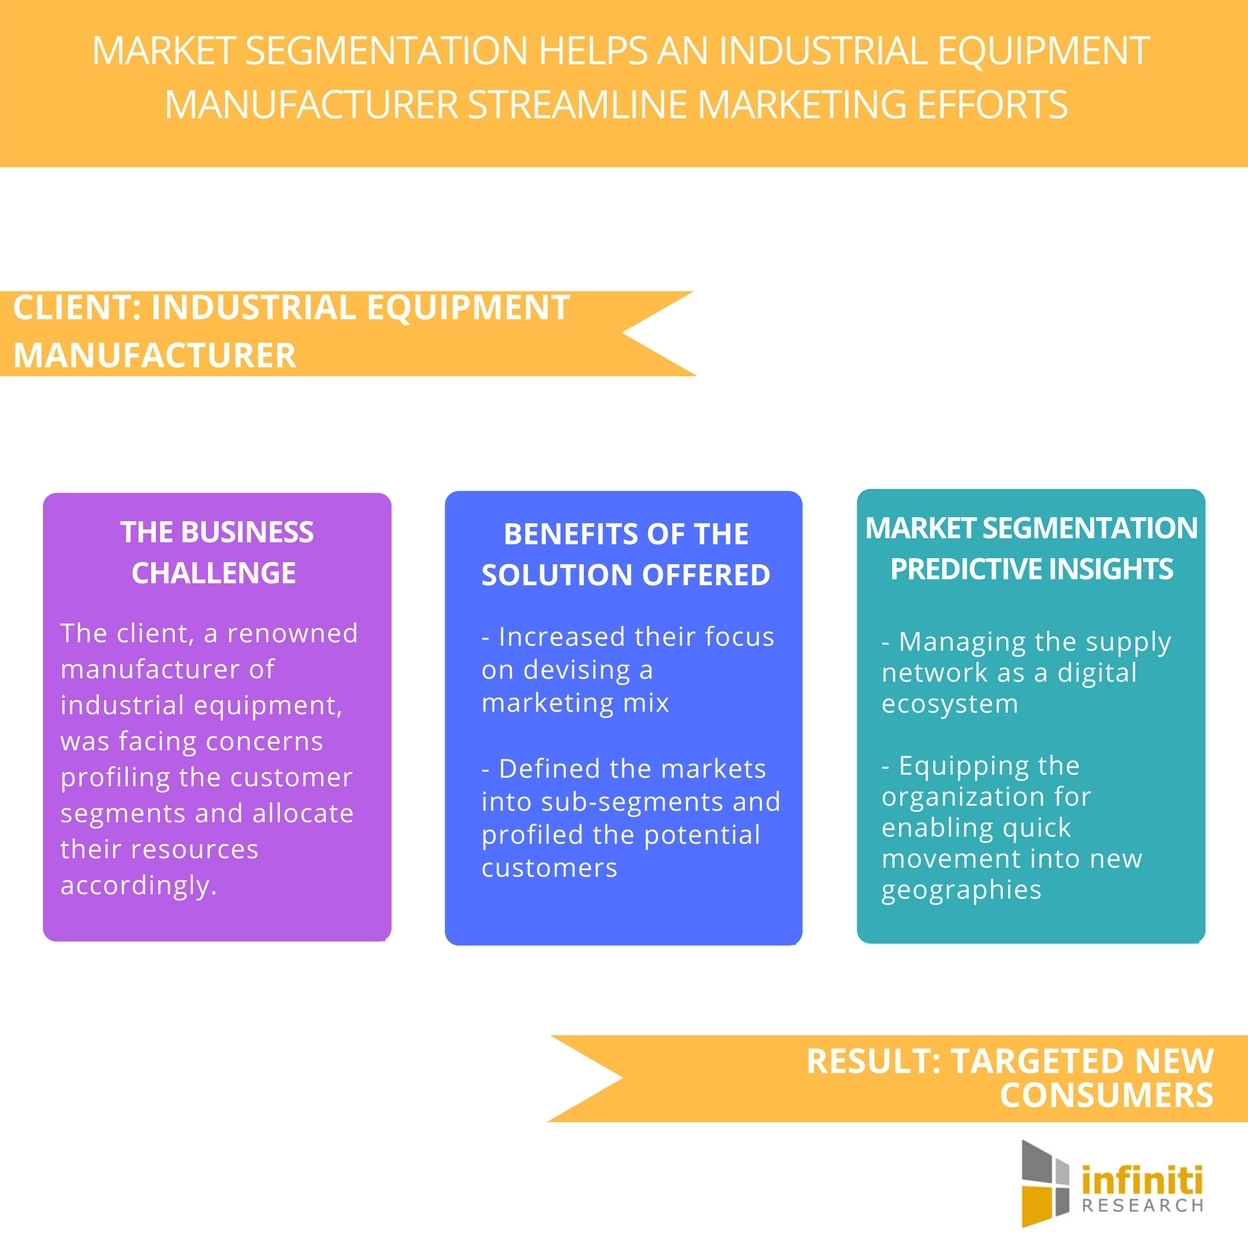 market segmentation study for a leading industrial equipment